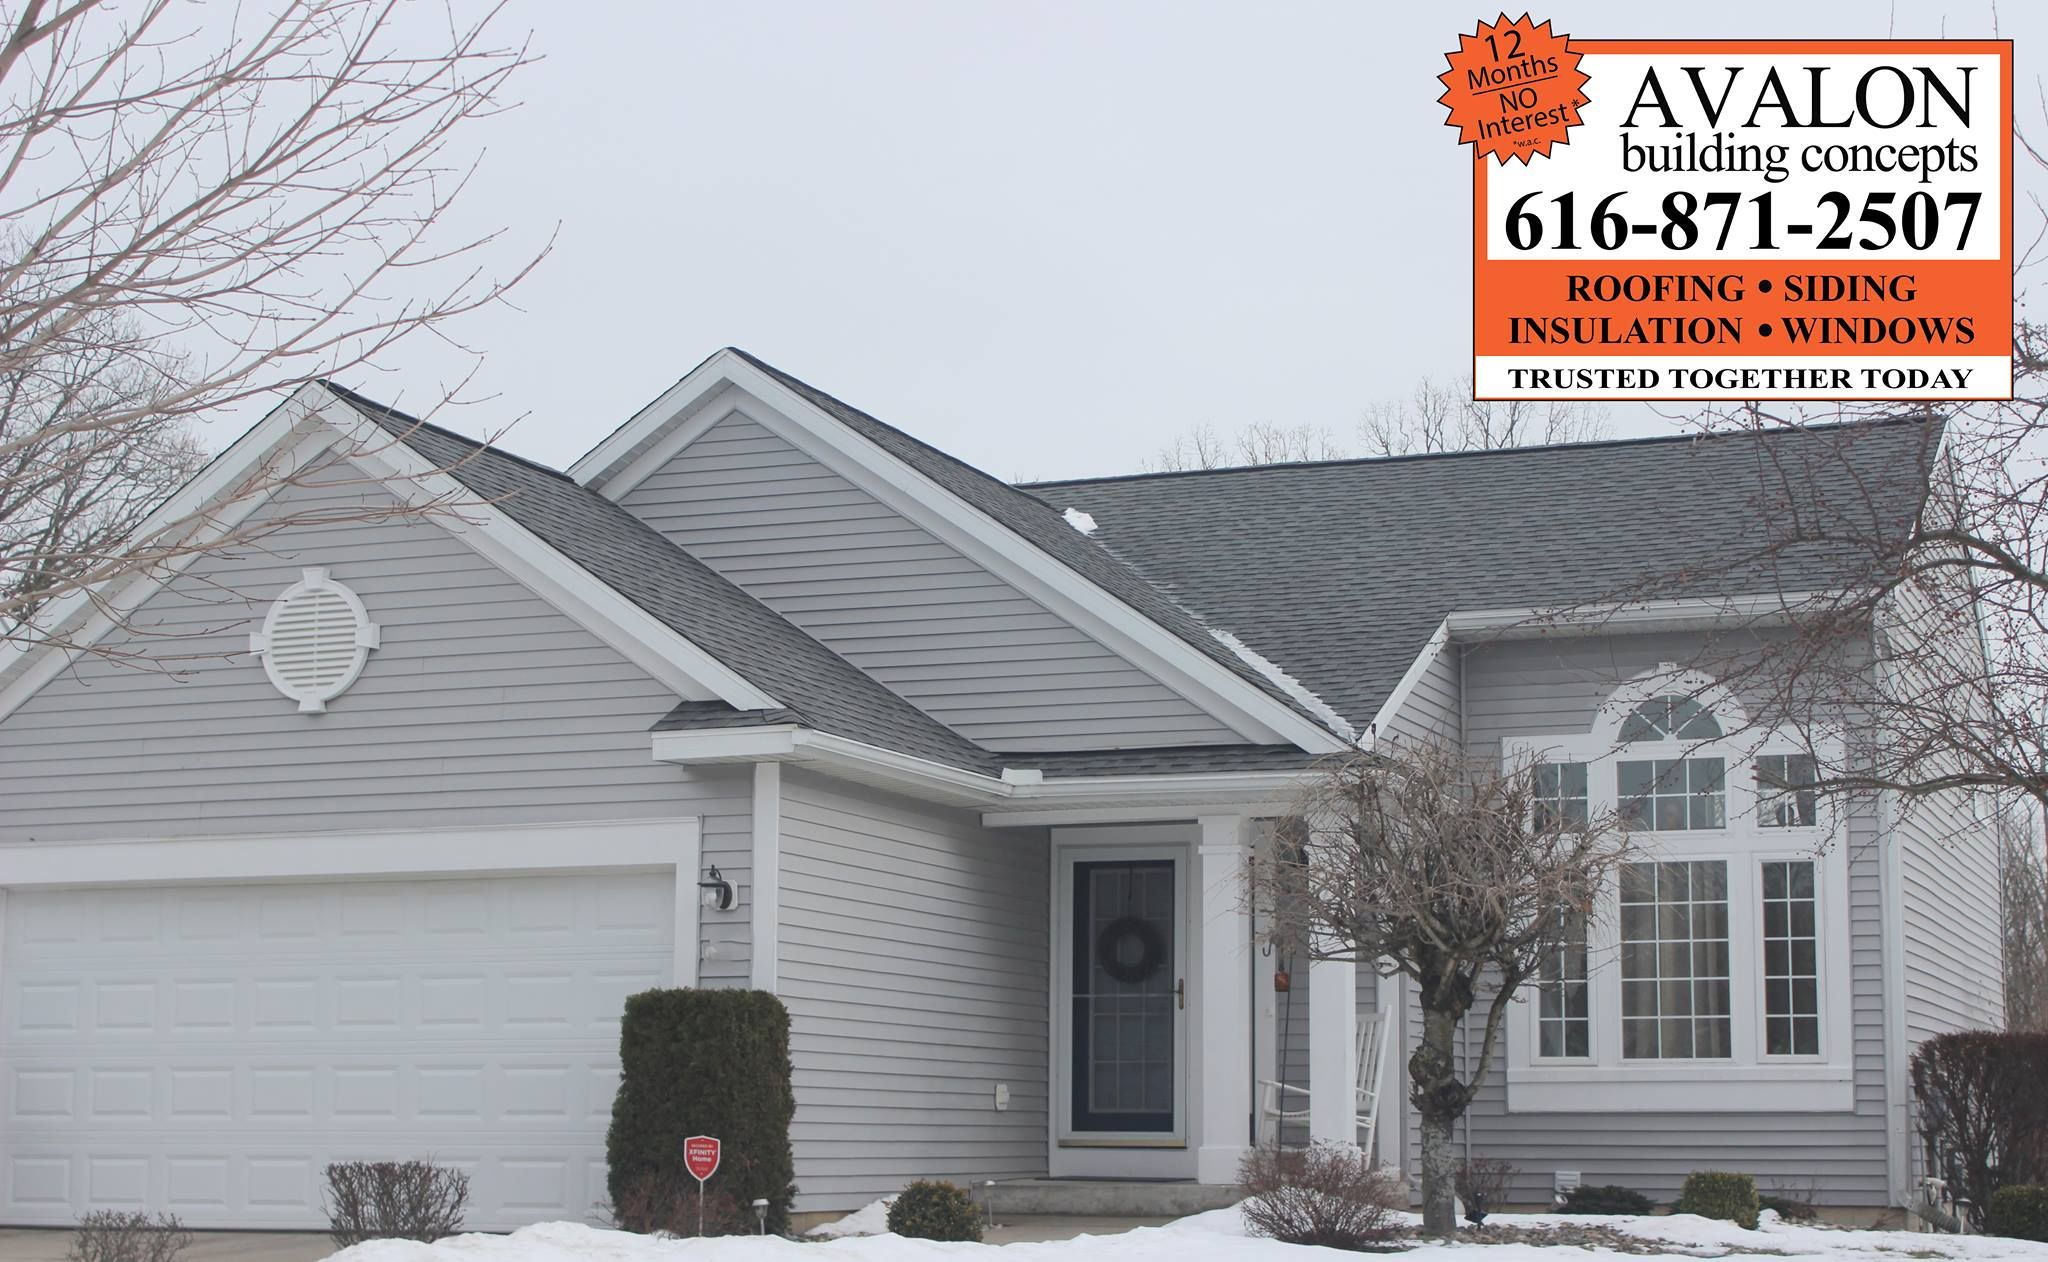 Goes to bat for gaf roof insurance claim insulated